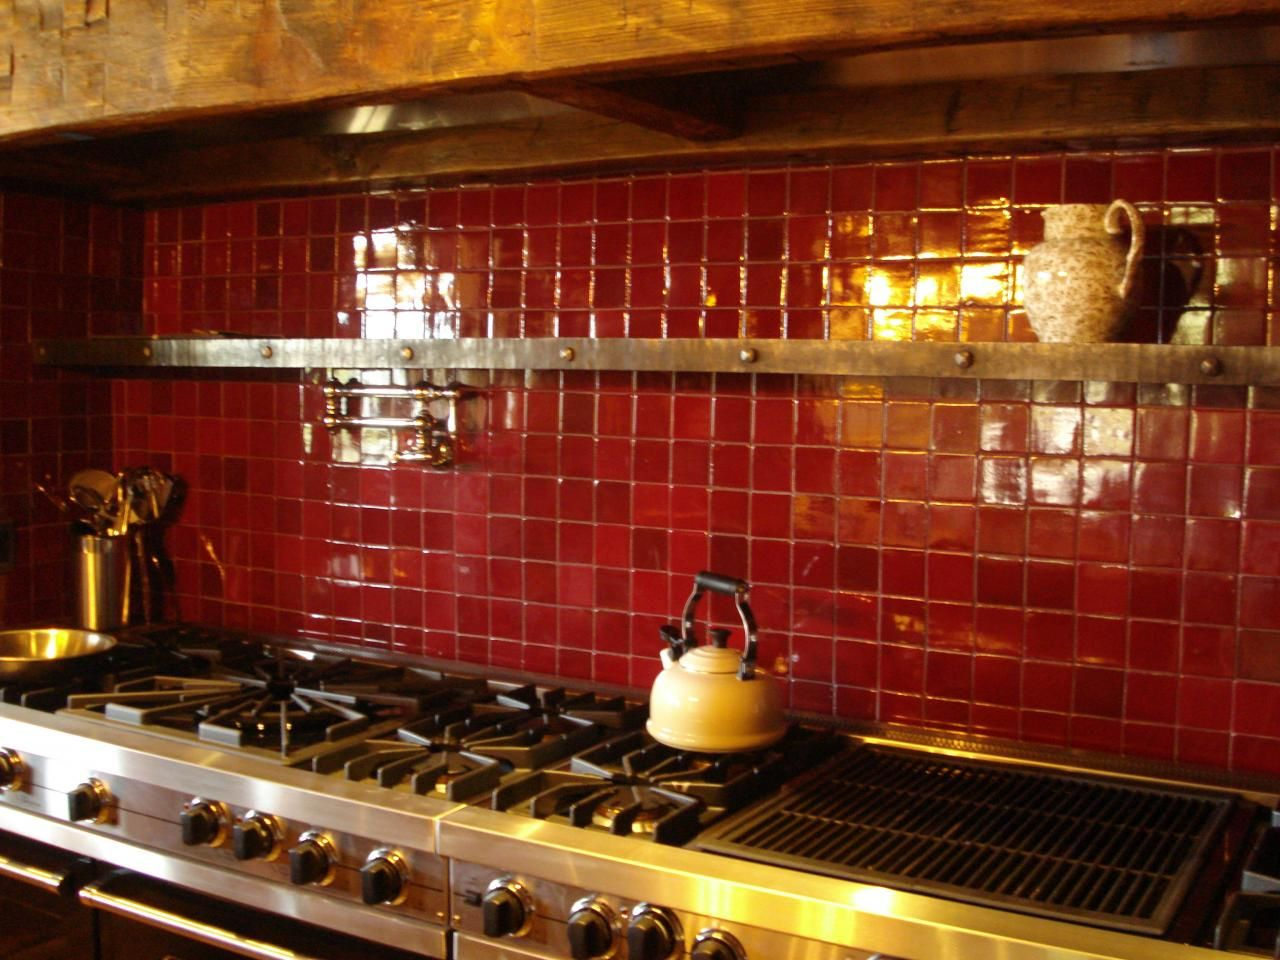 Red subway tile backsplash - Kitchen Back Splashes Kitchen Remodel Designs Red Kitchen Backsplash Subway Tile